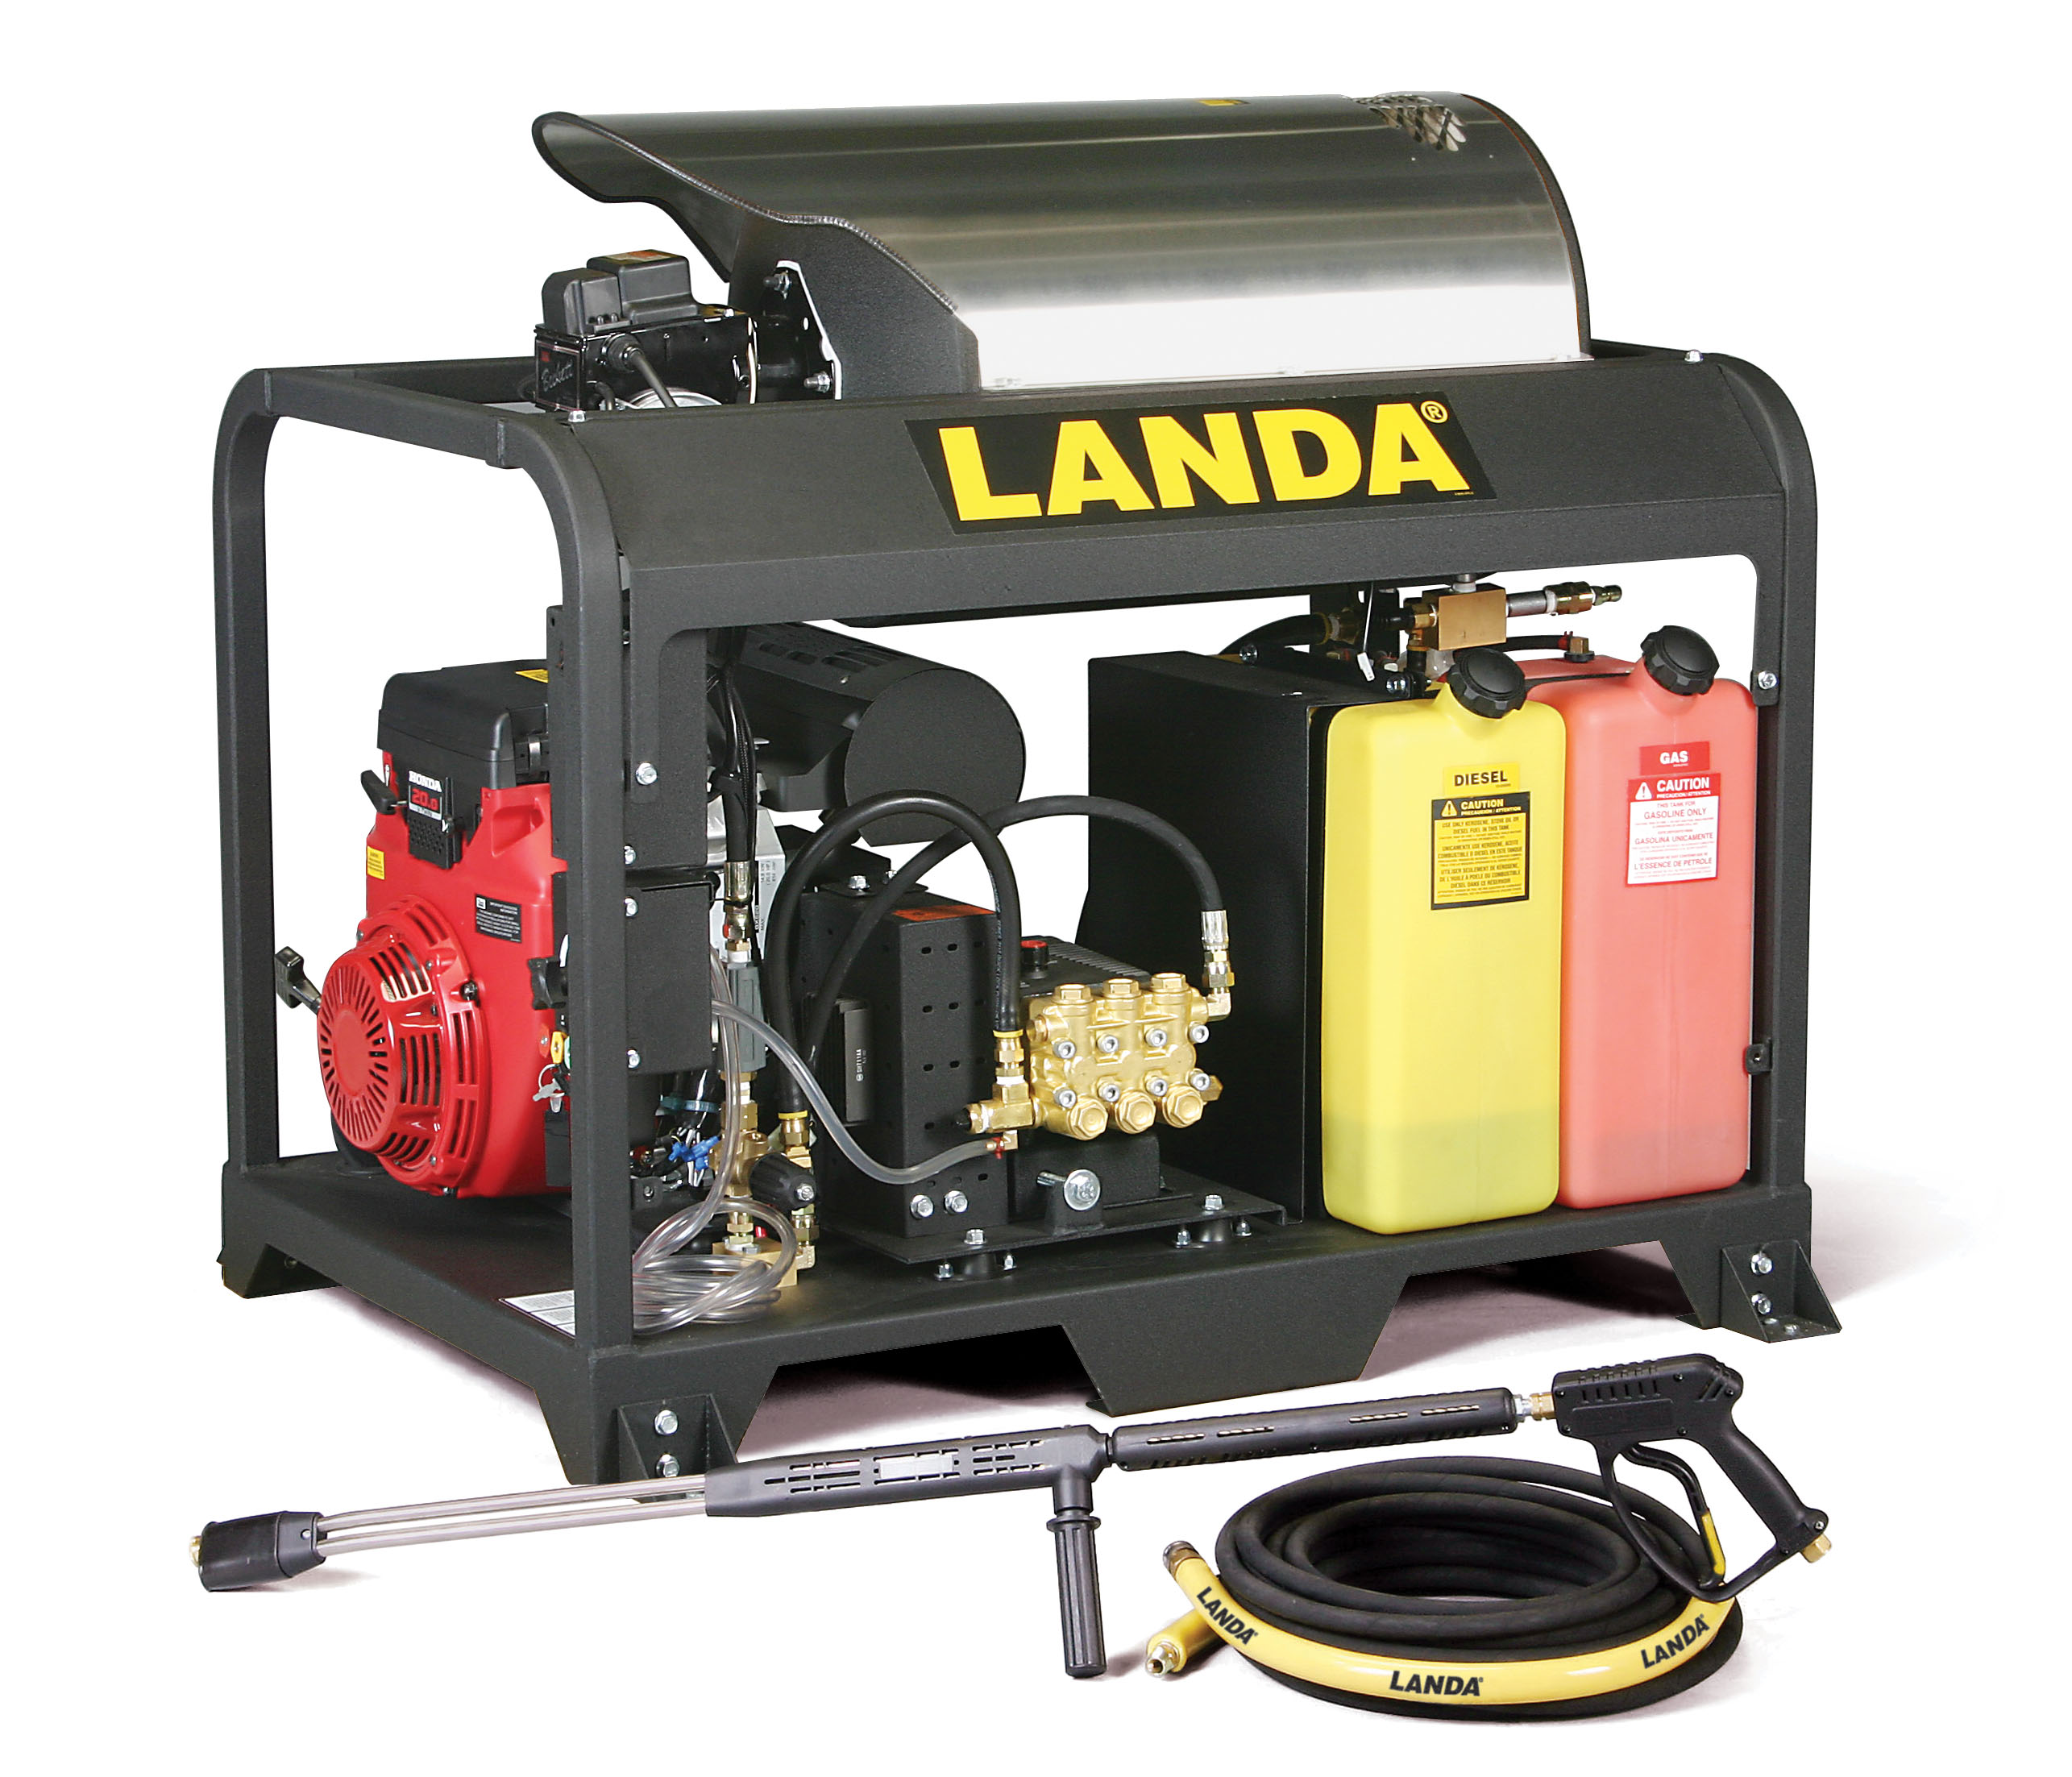 Landa Oil Fired Hot Water Pressure Washer PGDC5-35224E